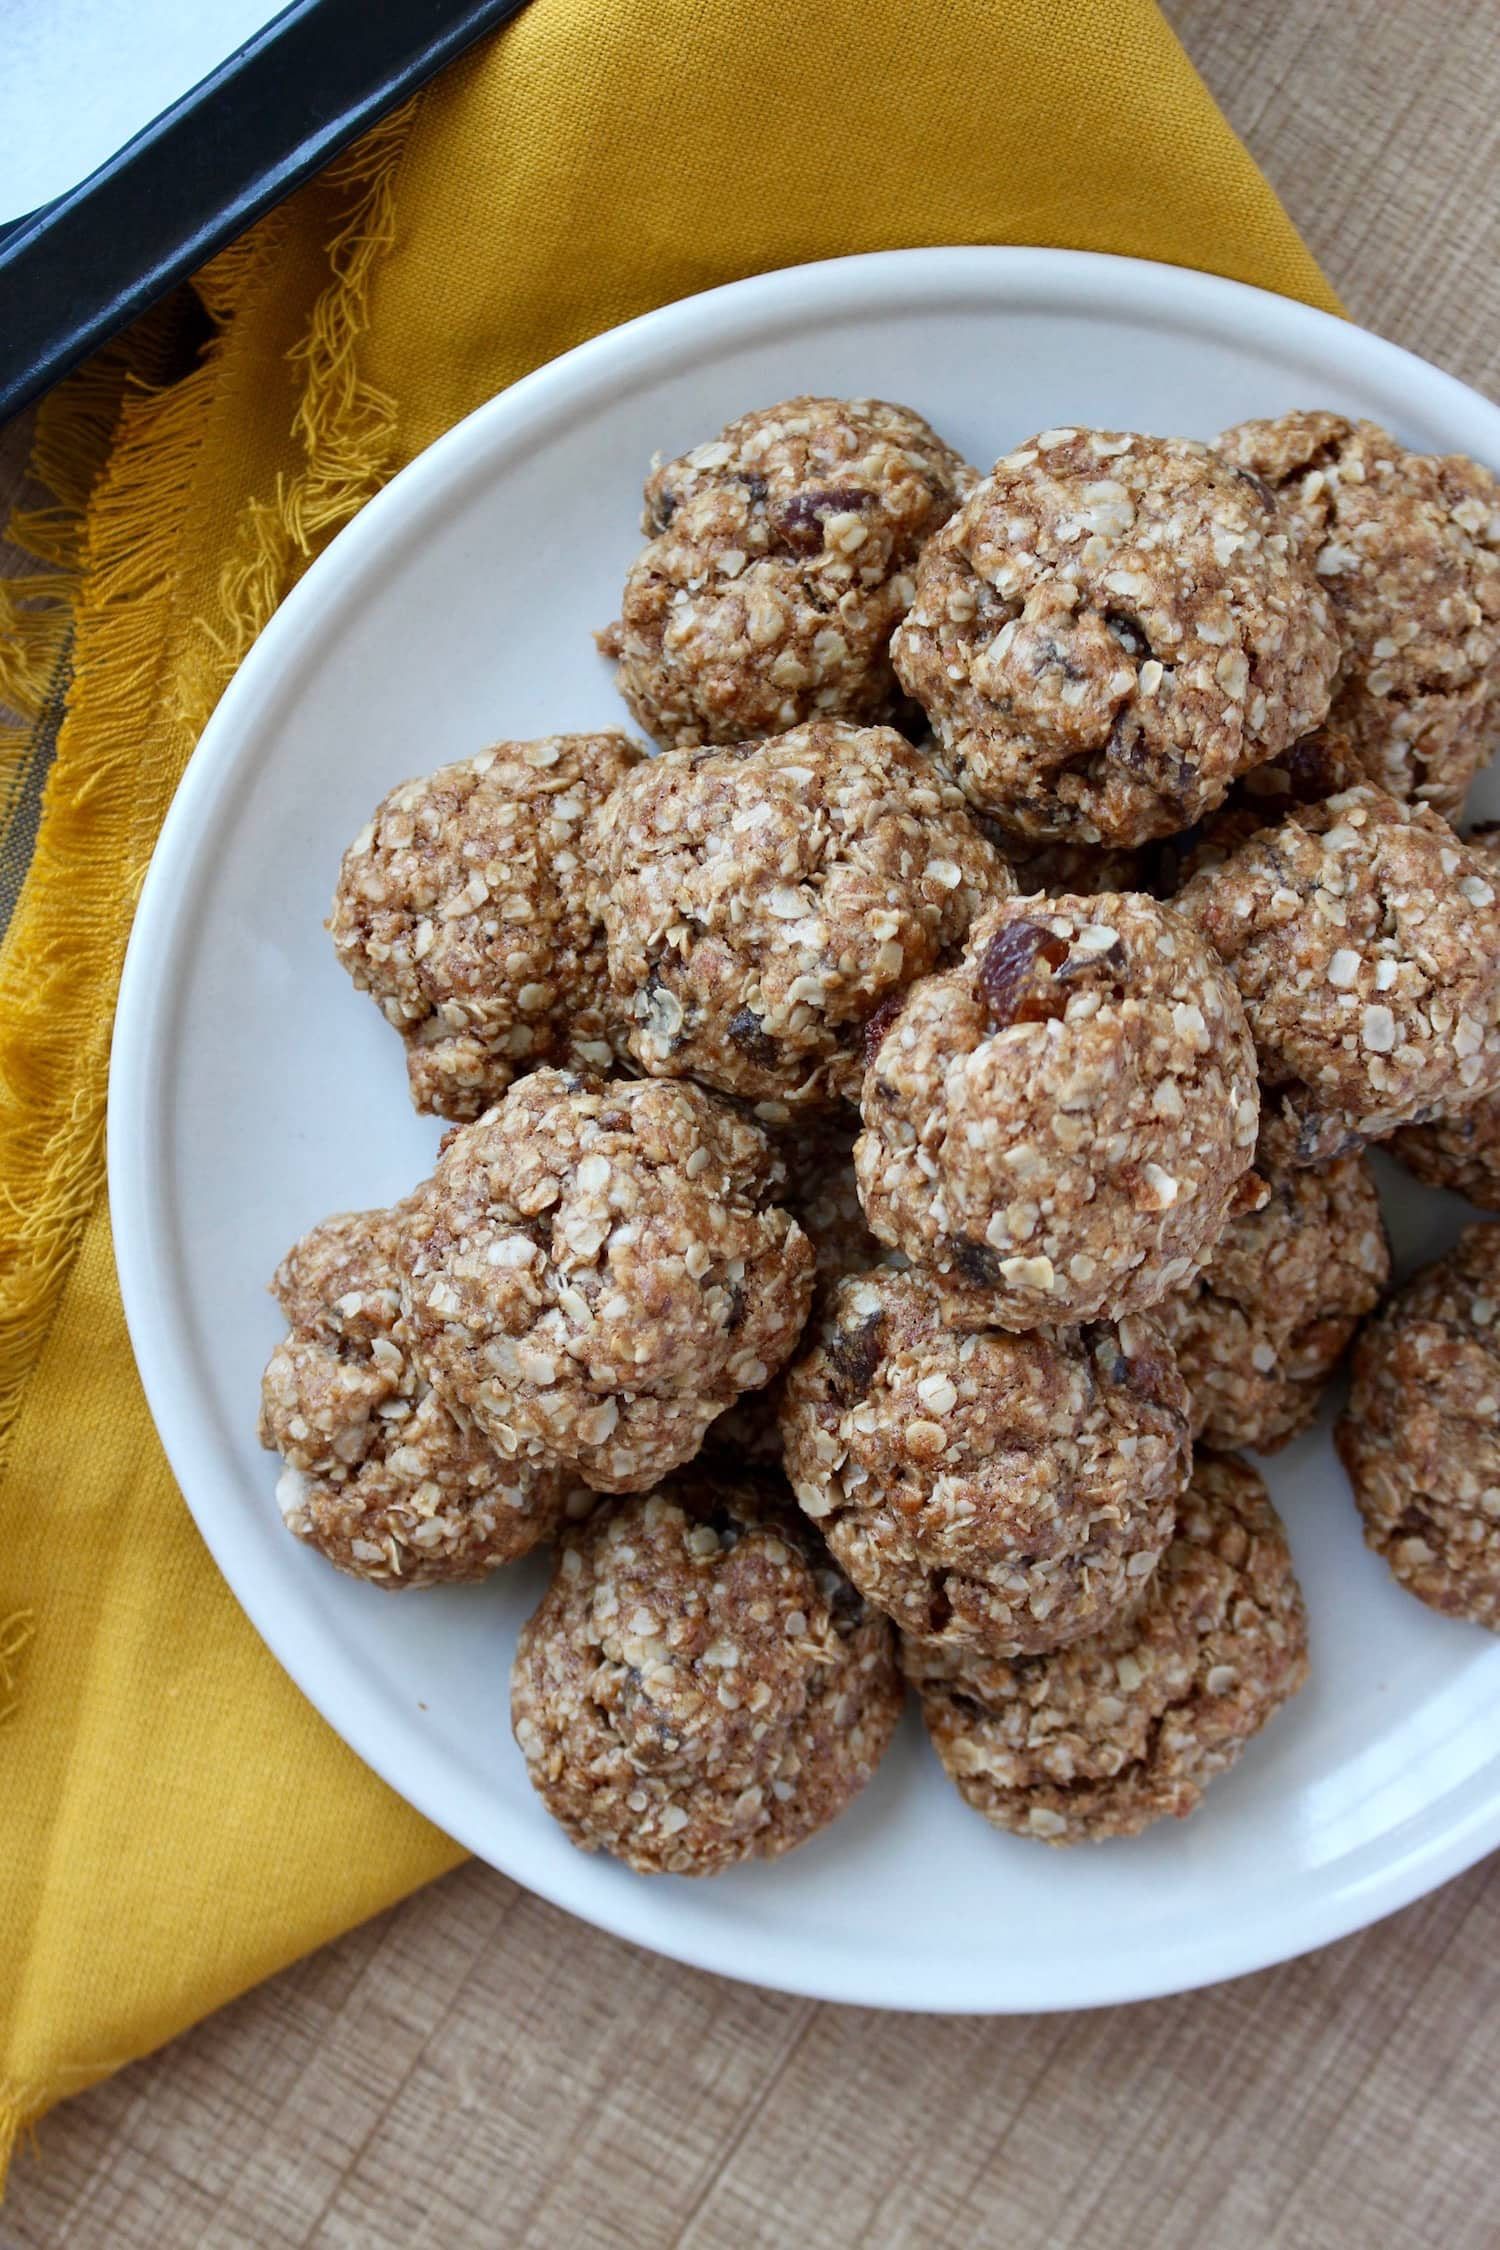 Chewy Vegan Oatmeal Date Cookies stacked on a plate